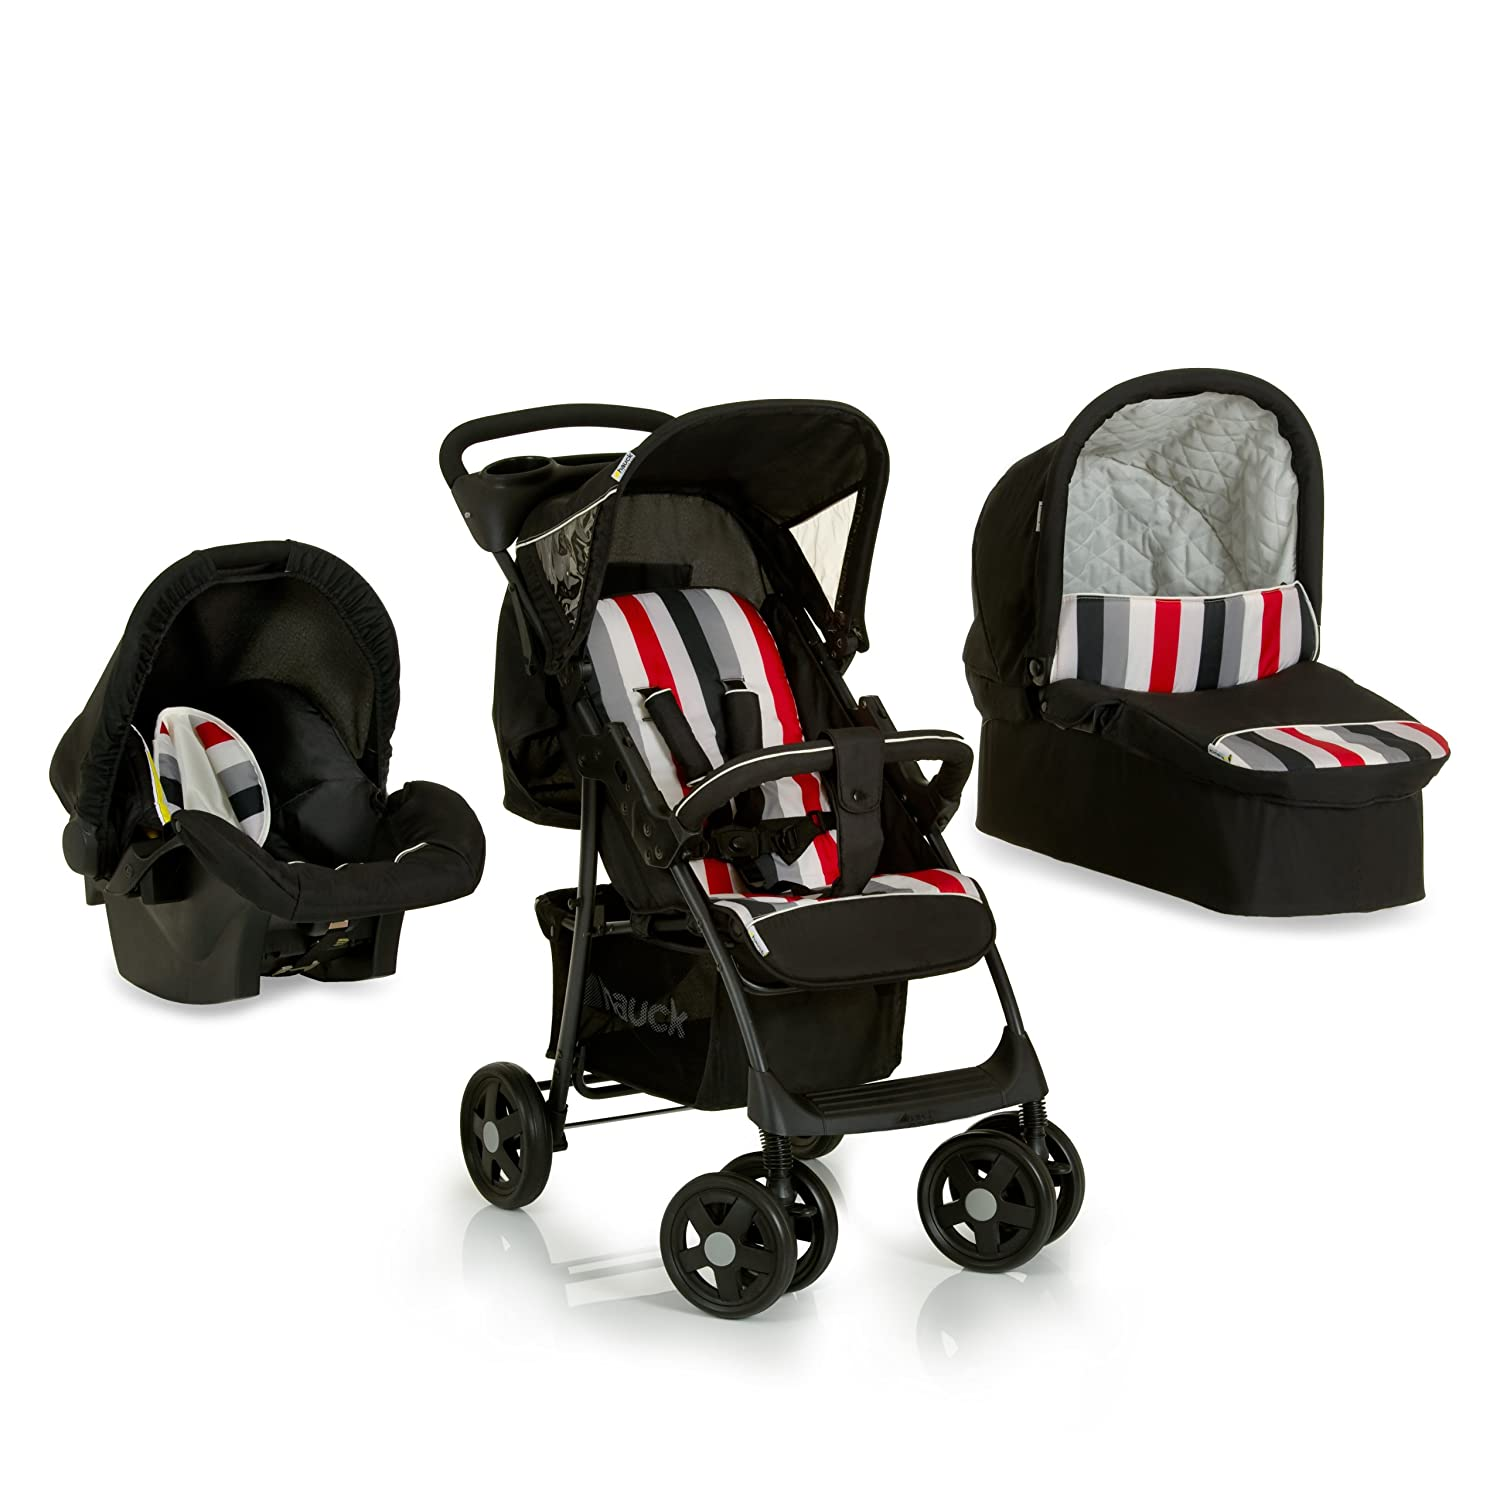 3 in 1 prams Cheap 3 in 1 Prams 81T5OCMPMlL